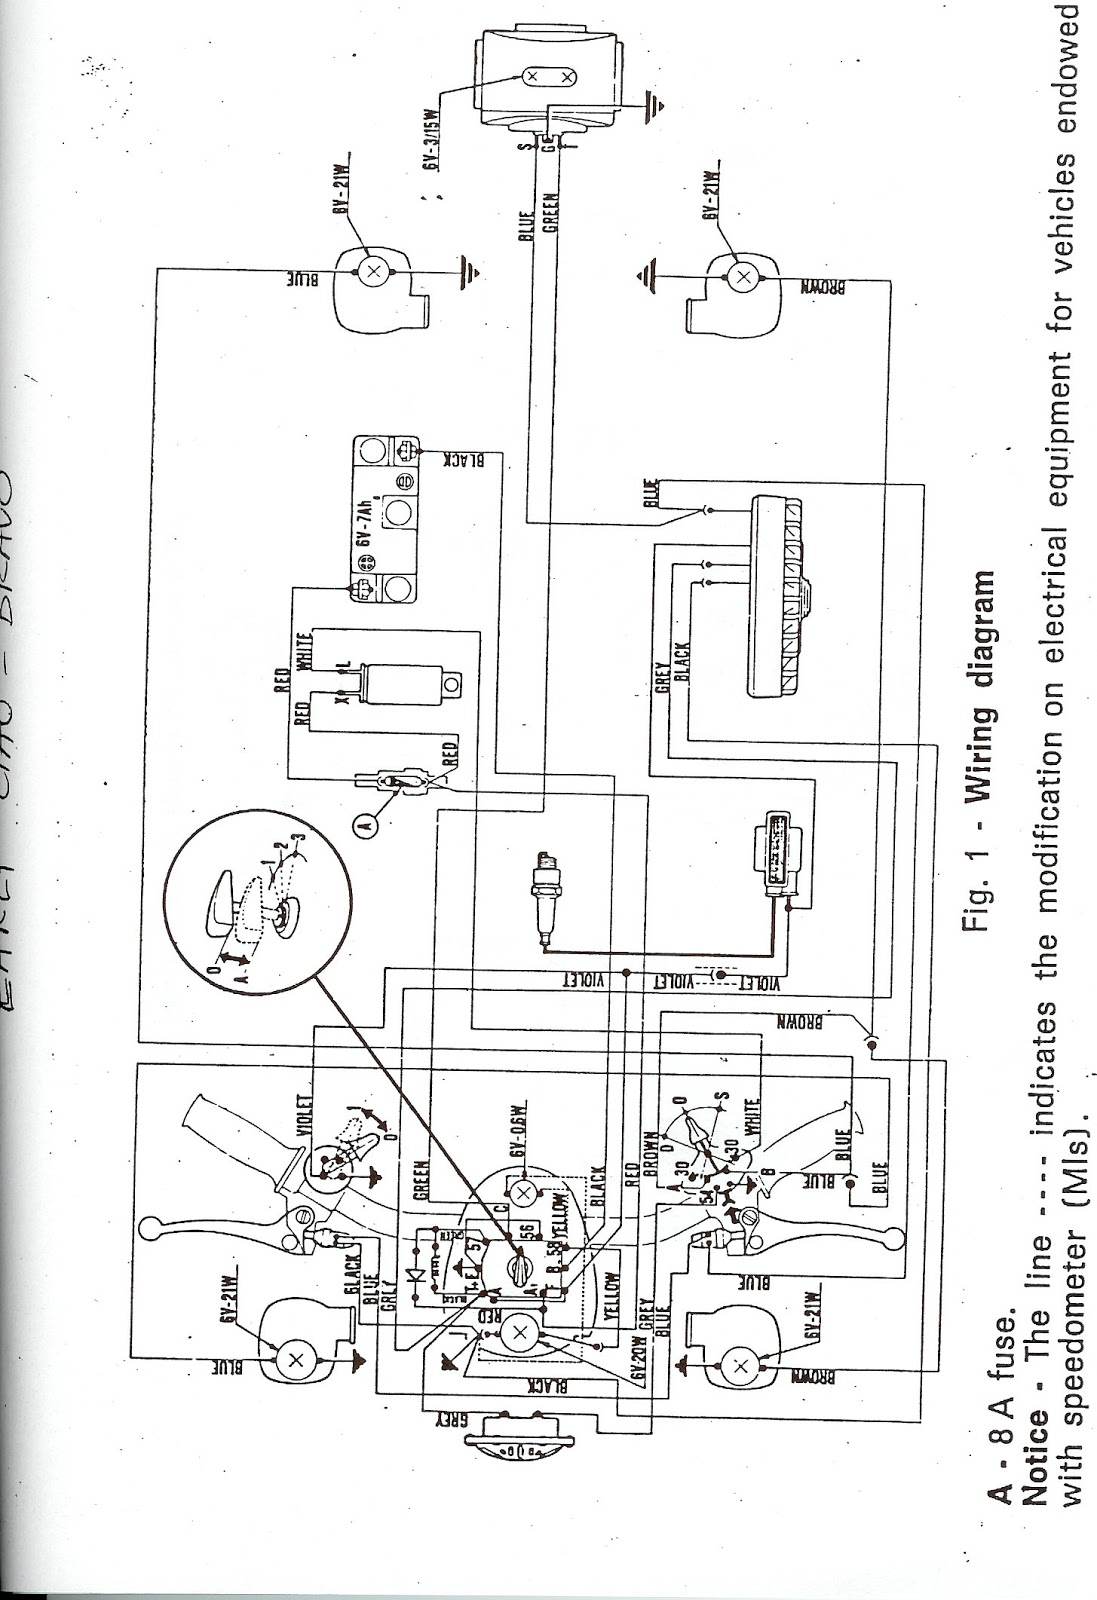 puch moped wiring diagram   25 wiring diagram images